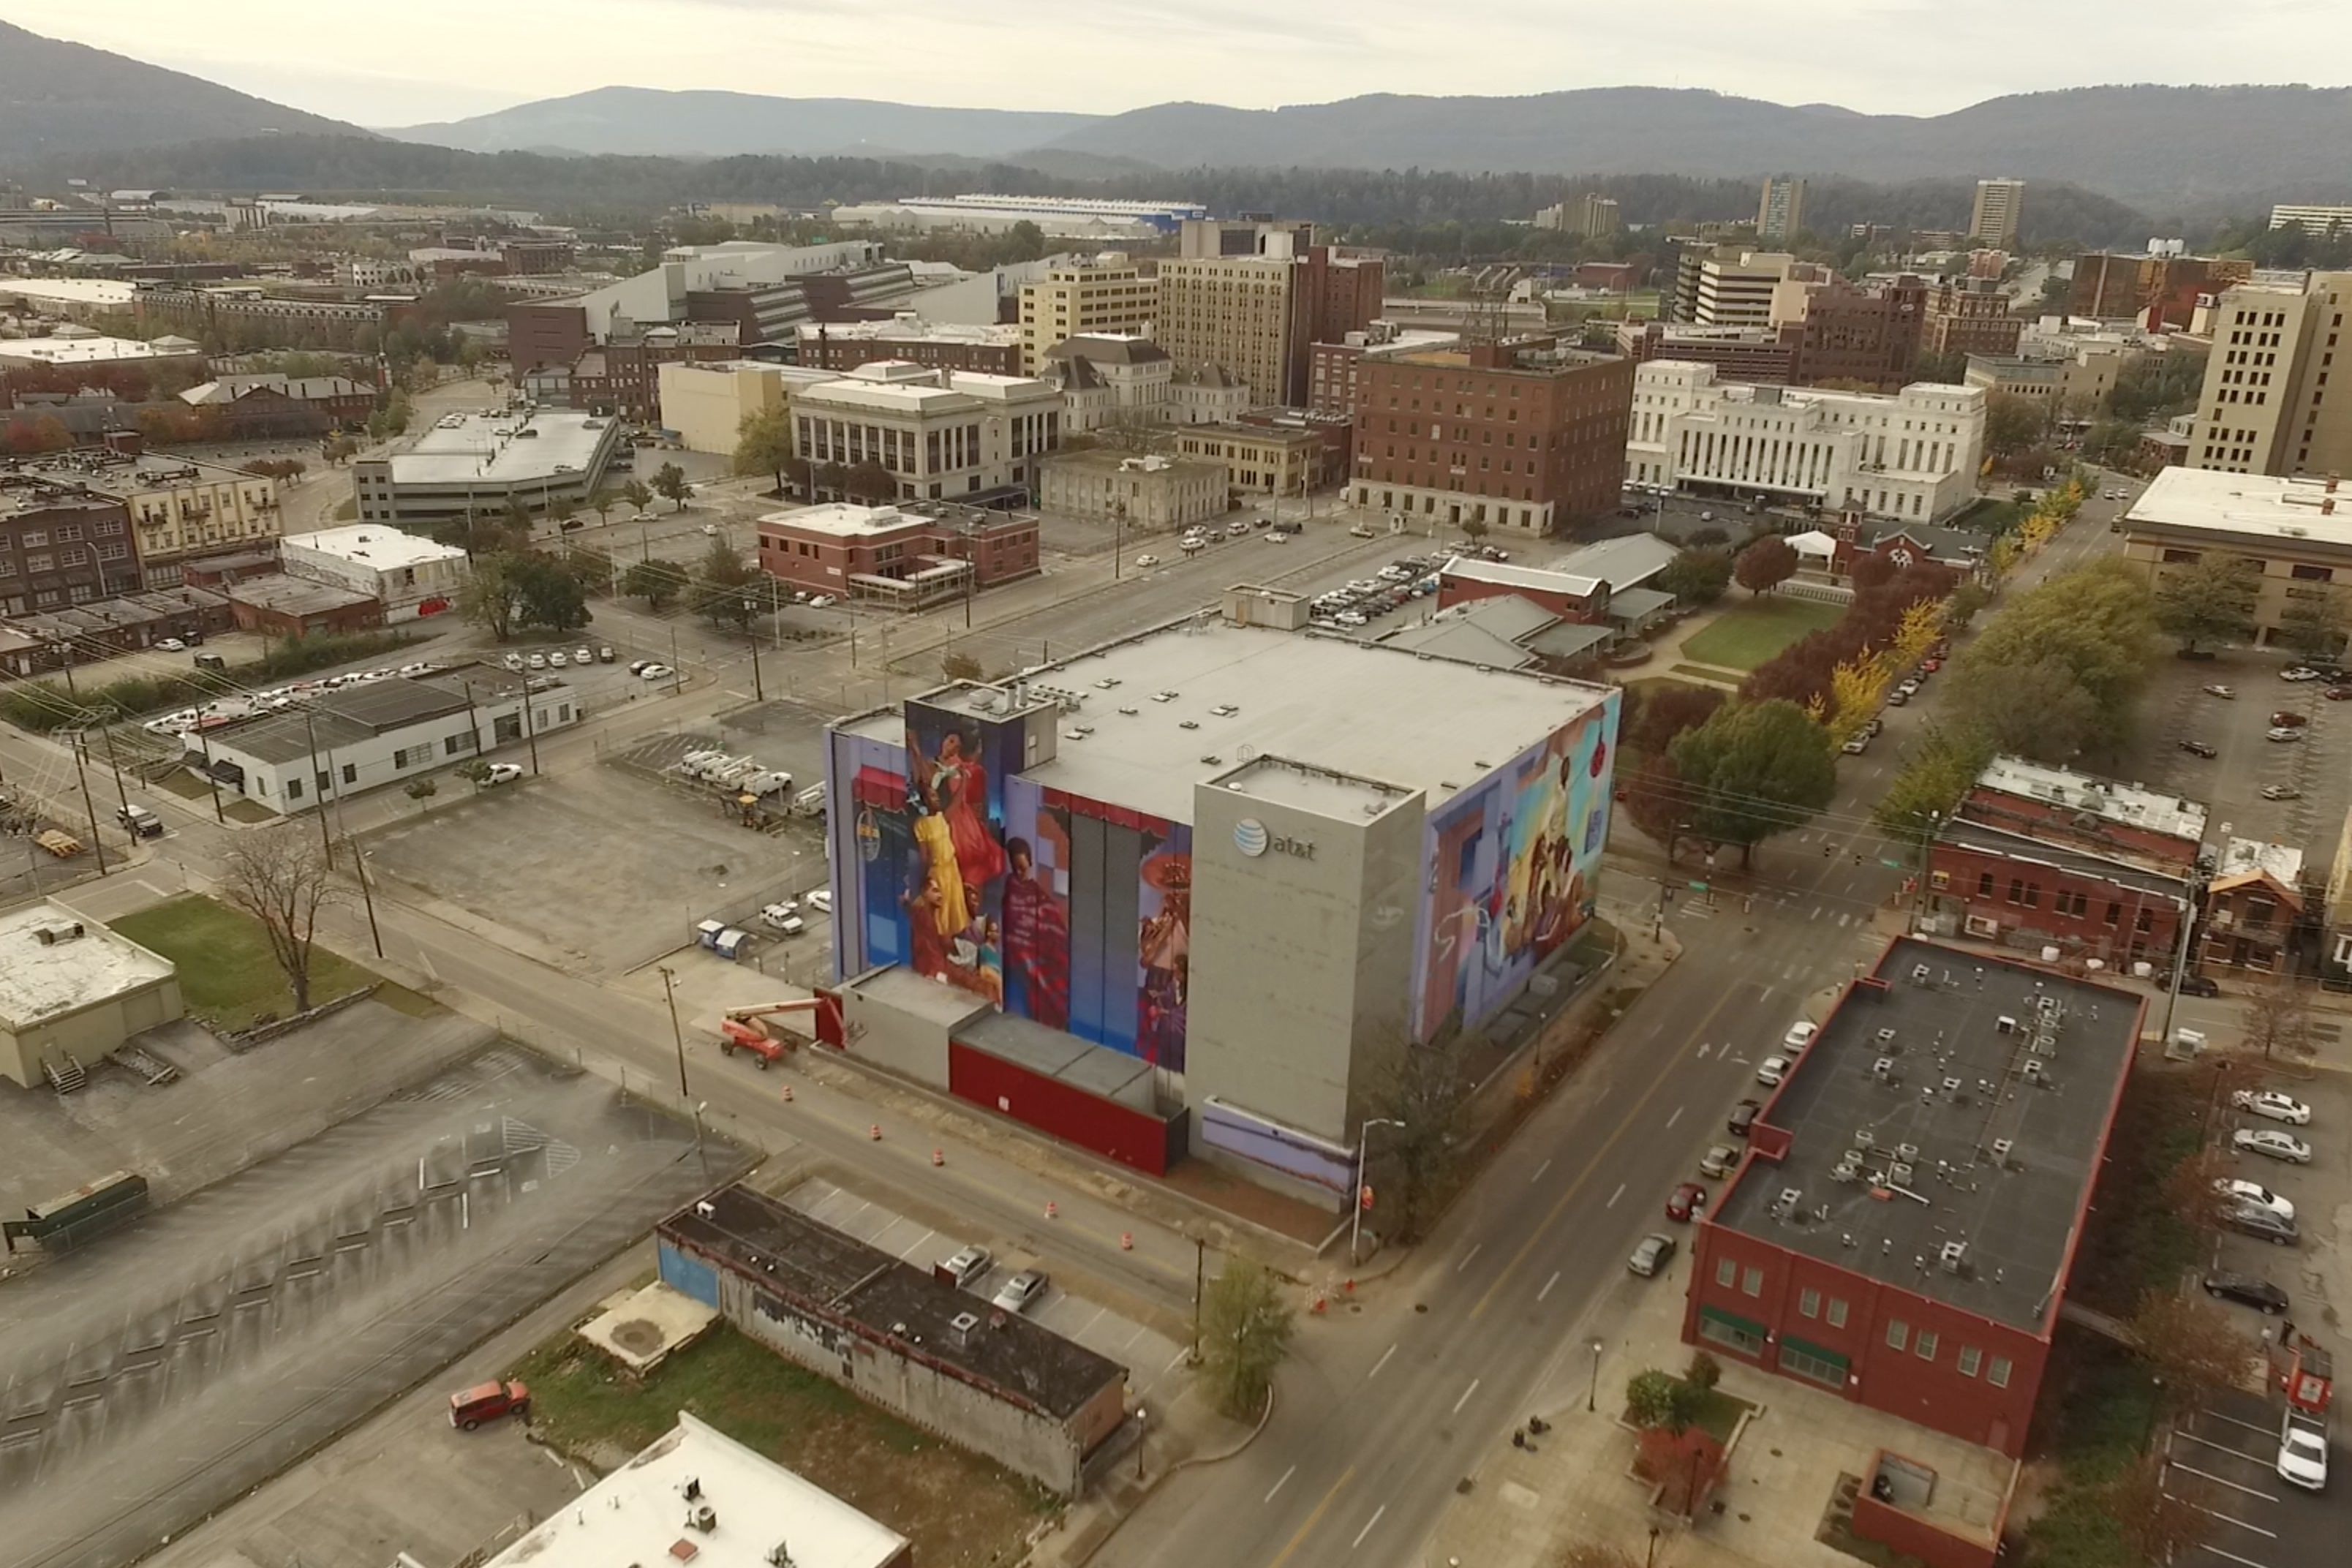 New Documentary Shows How Chattanooga is Using a Mural to Unite Its Community